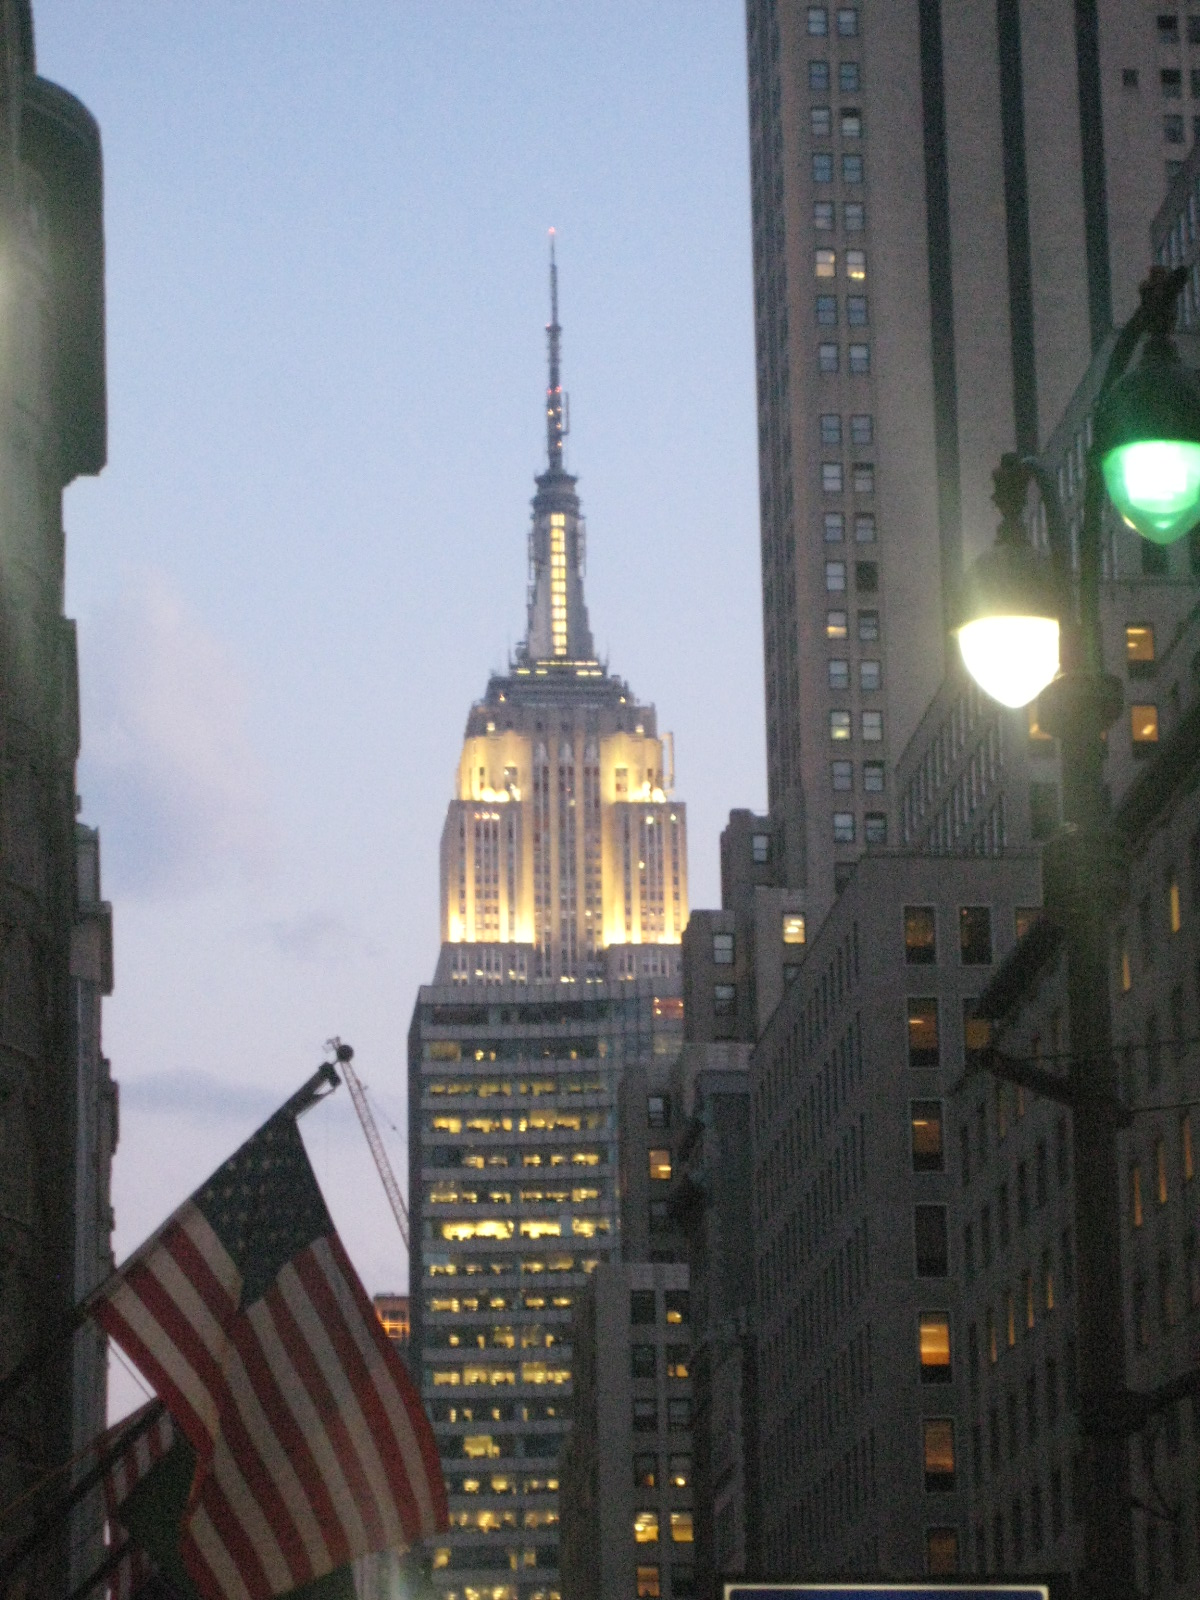 an overview of the empire state building Empire state building case study summary 1 1© 2015 extenet systems, inc confidential & proprietary© 2015 extenet systems, inc.